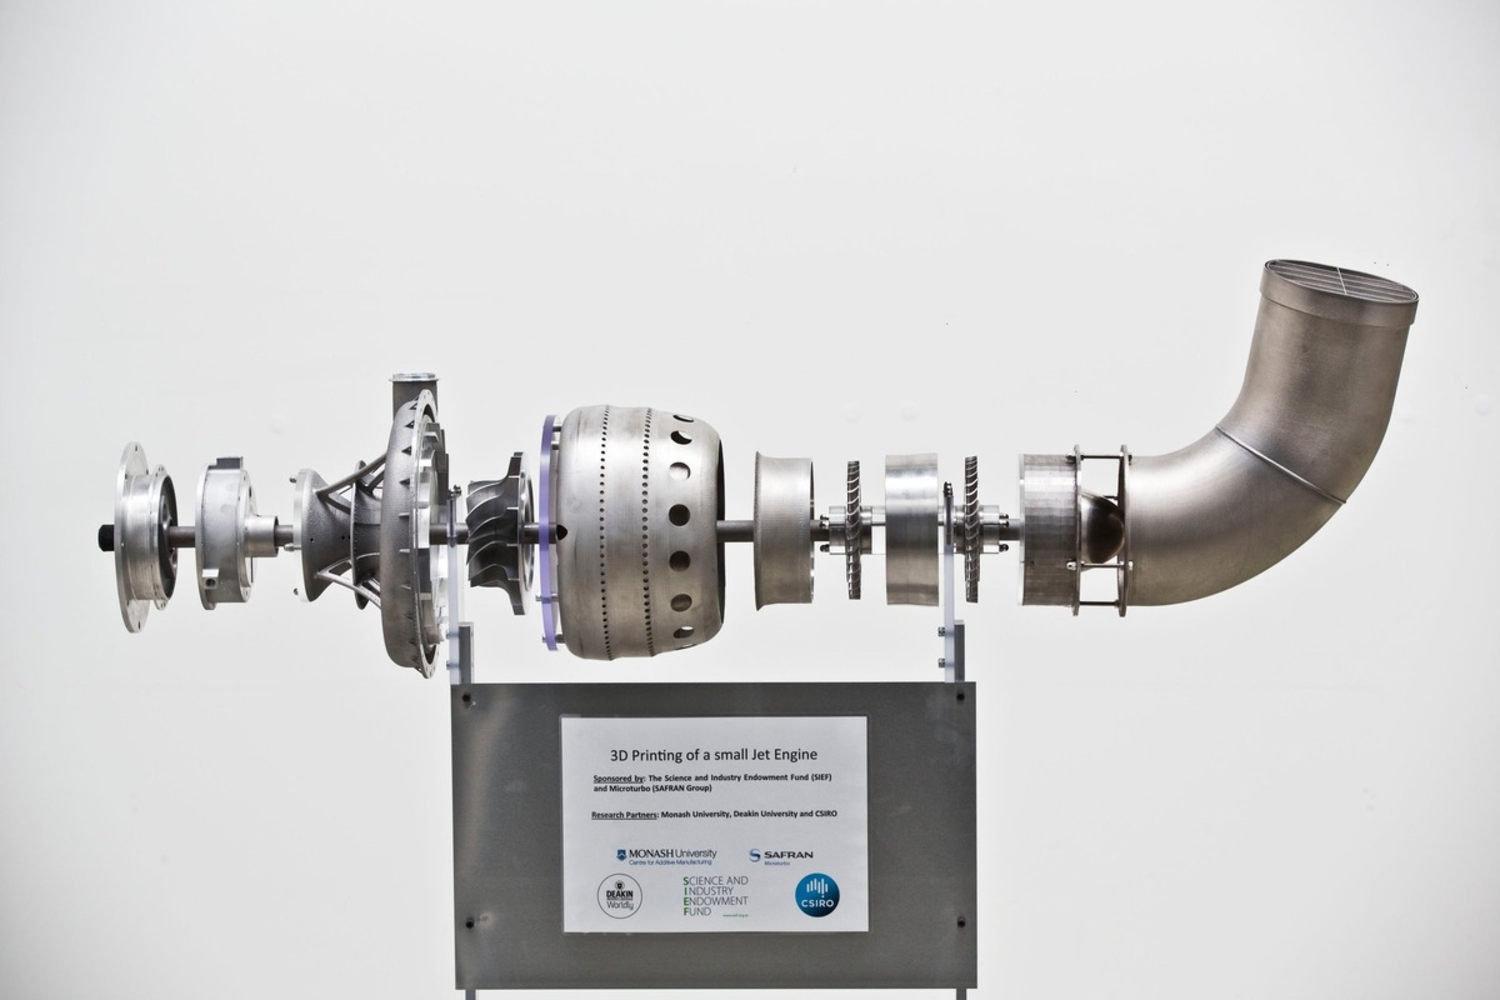 Two Jet Engines Have Been 3D Printed